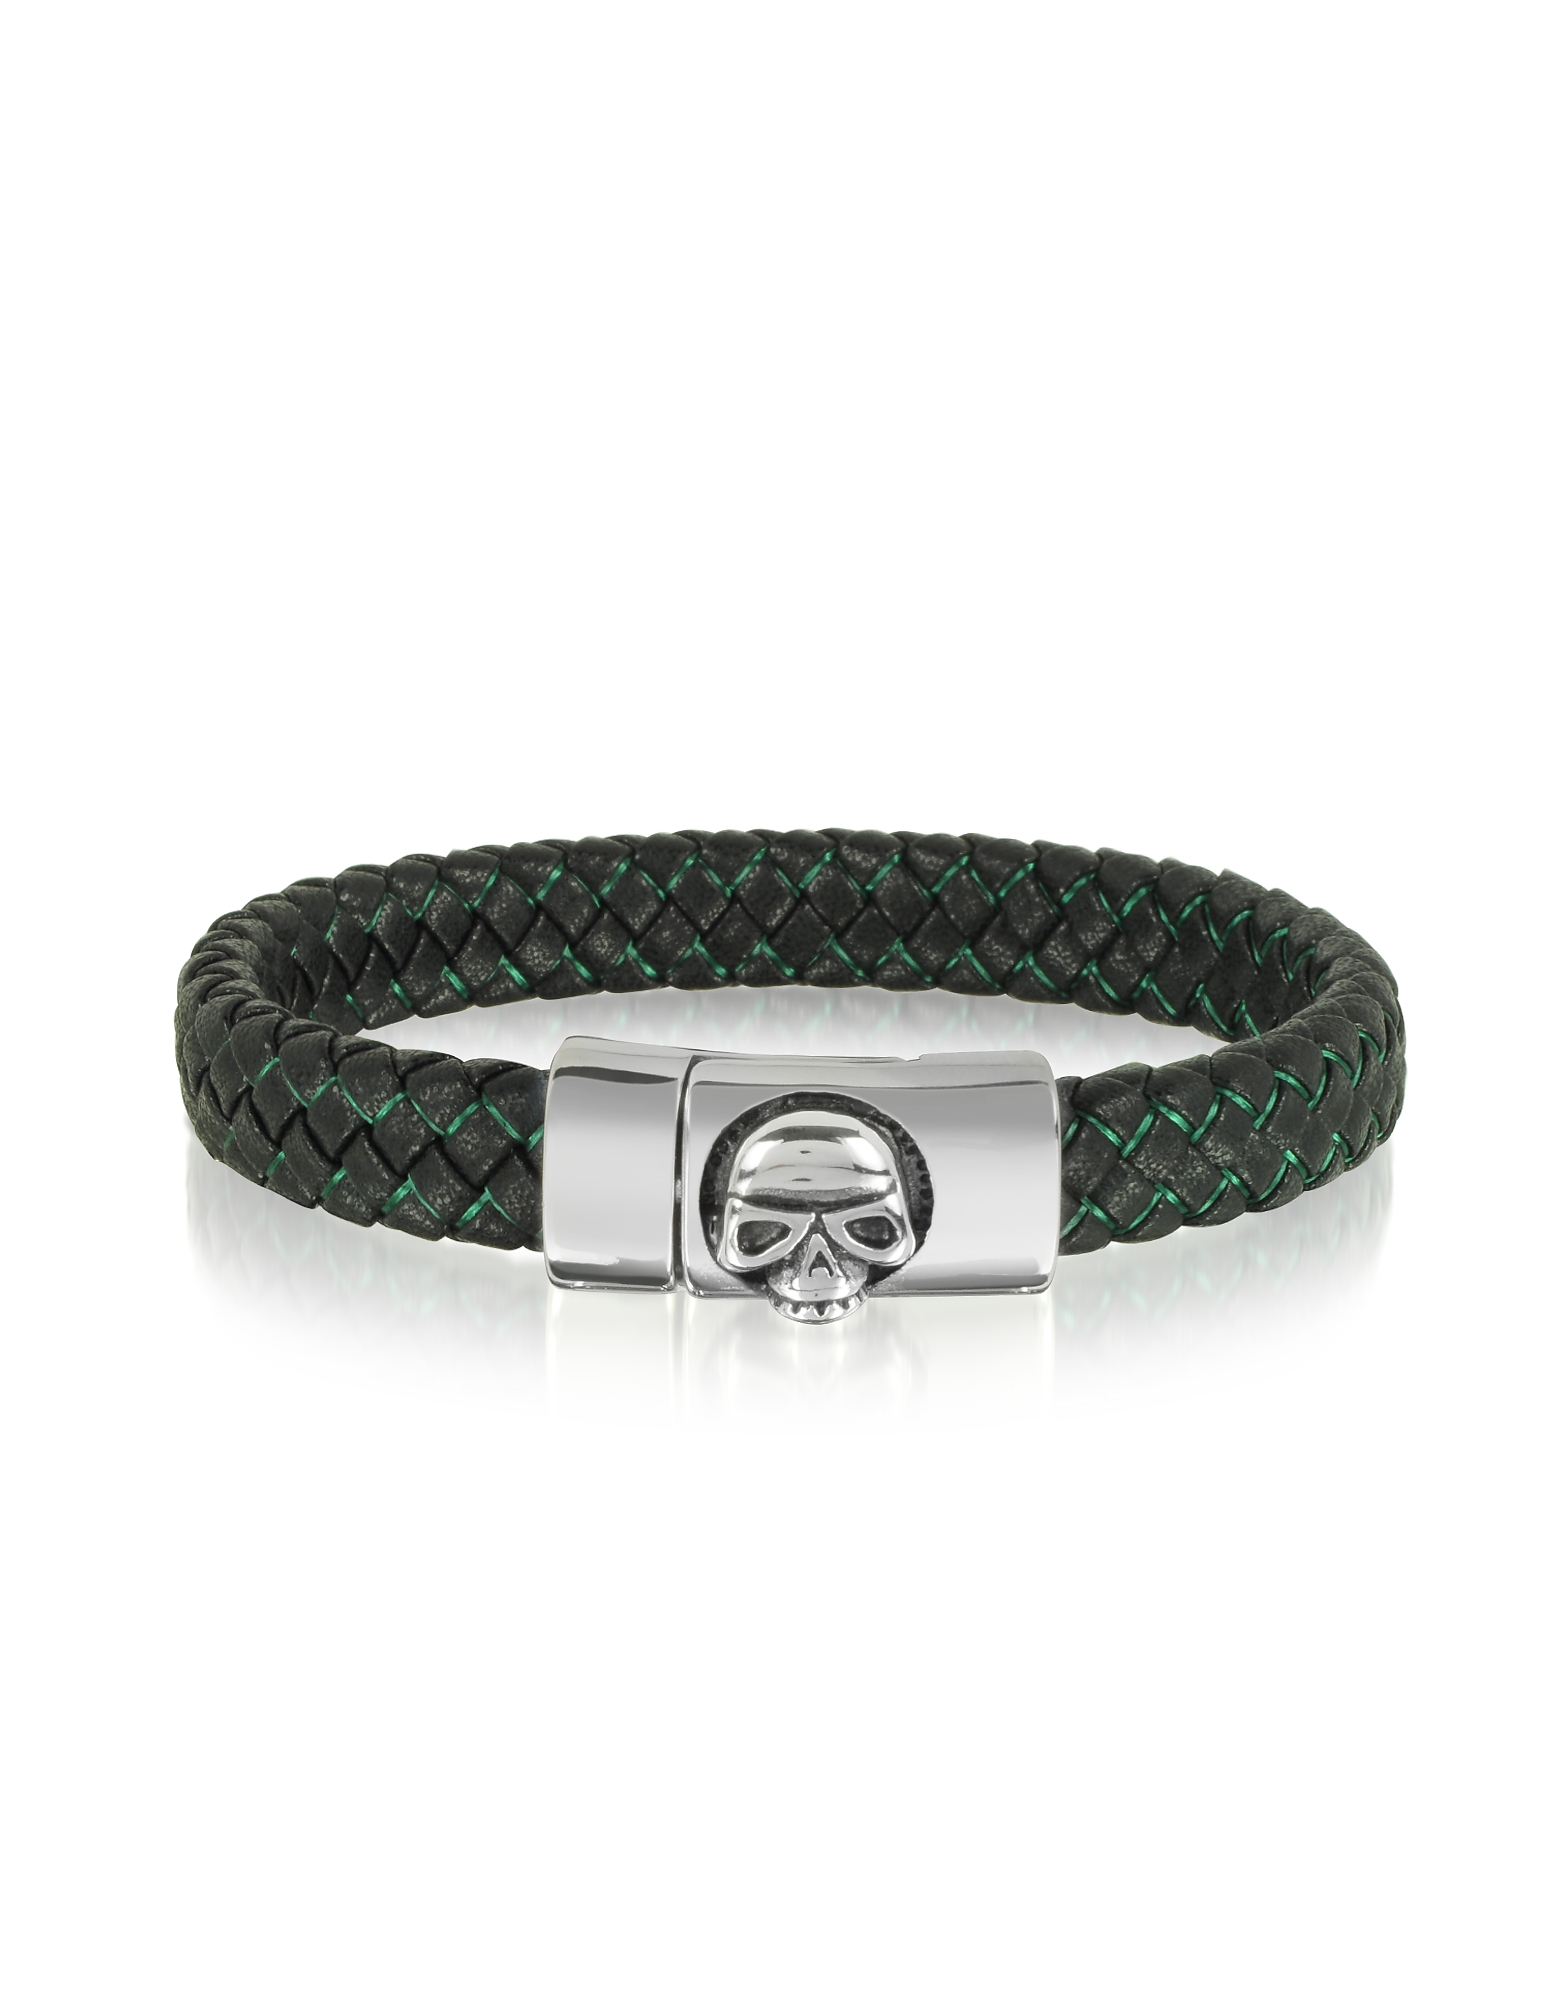 Blackbourne Designer Men's Bracelets, Black Woven Leather Men's bracelet w/Stainless Steel Skull